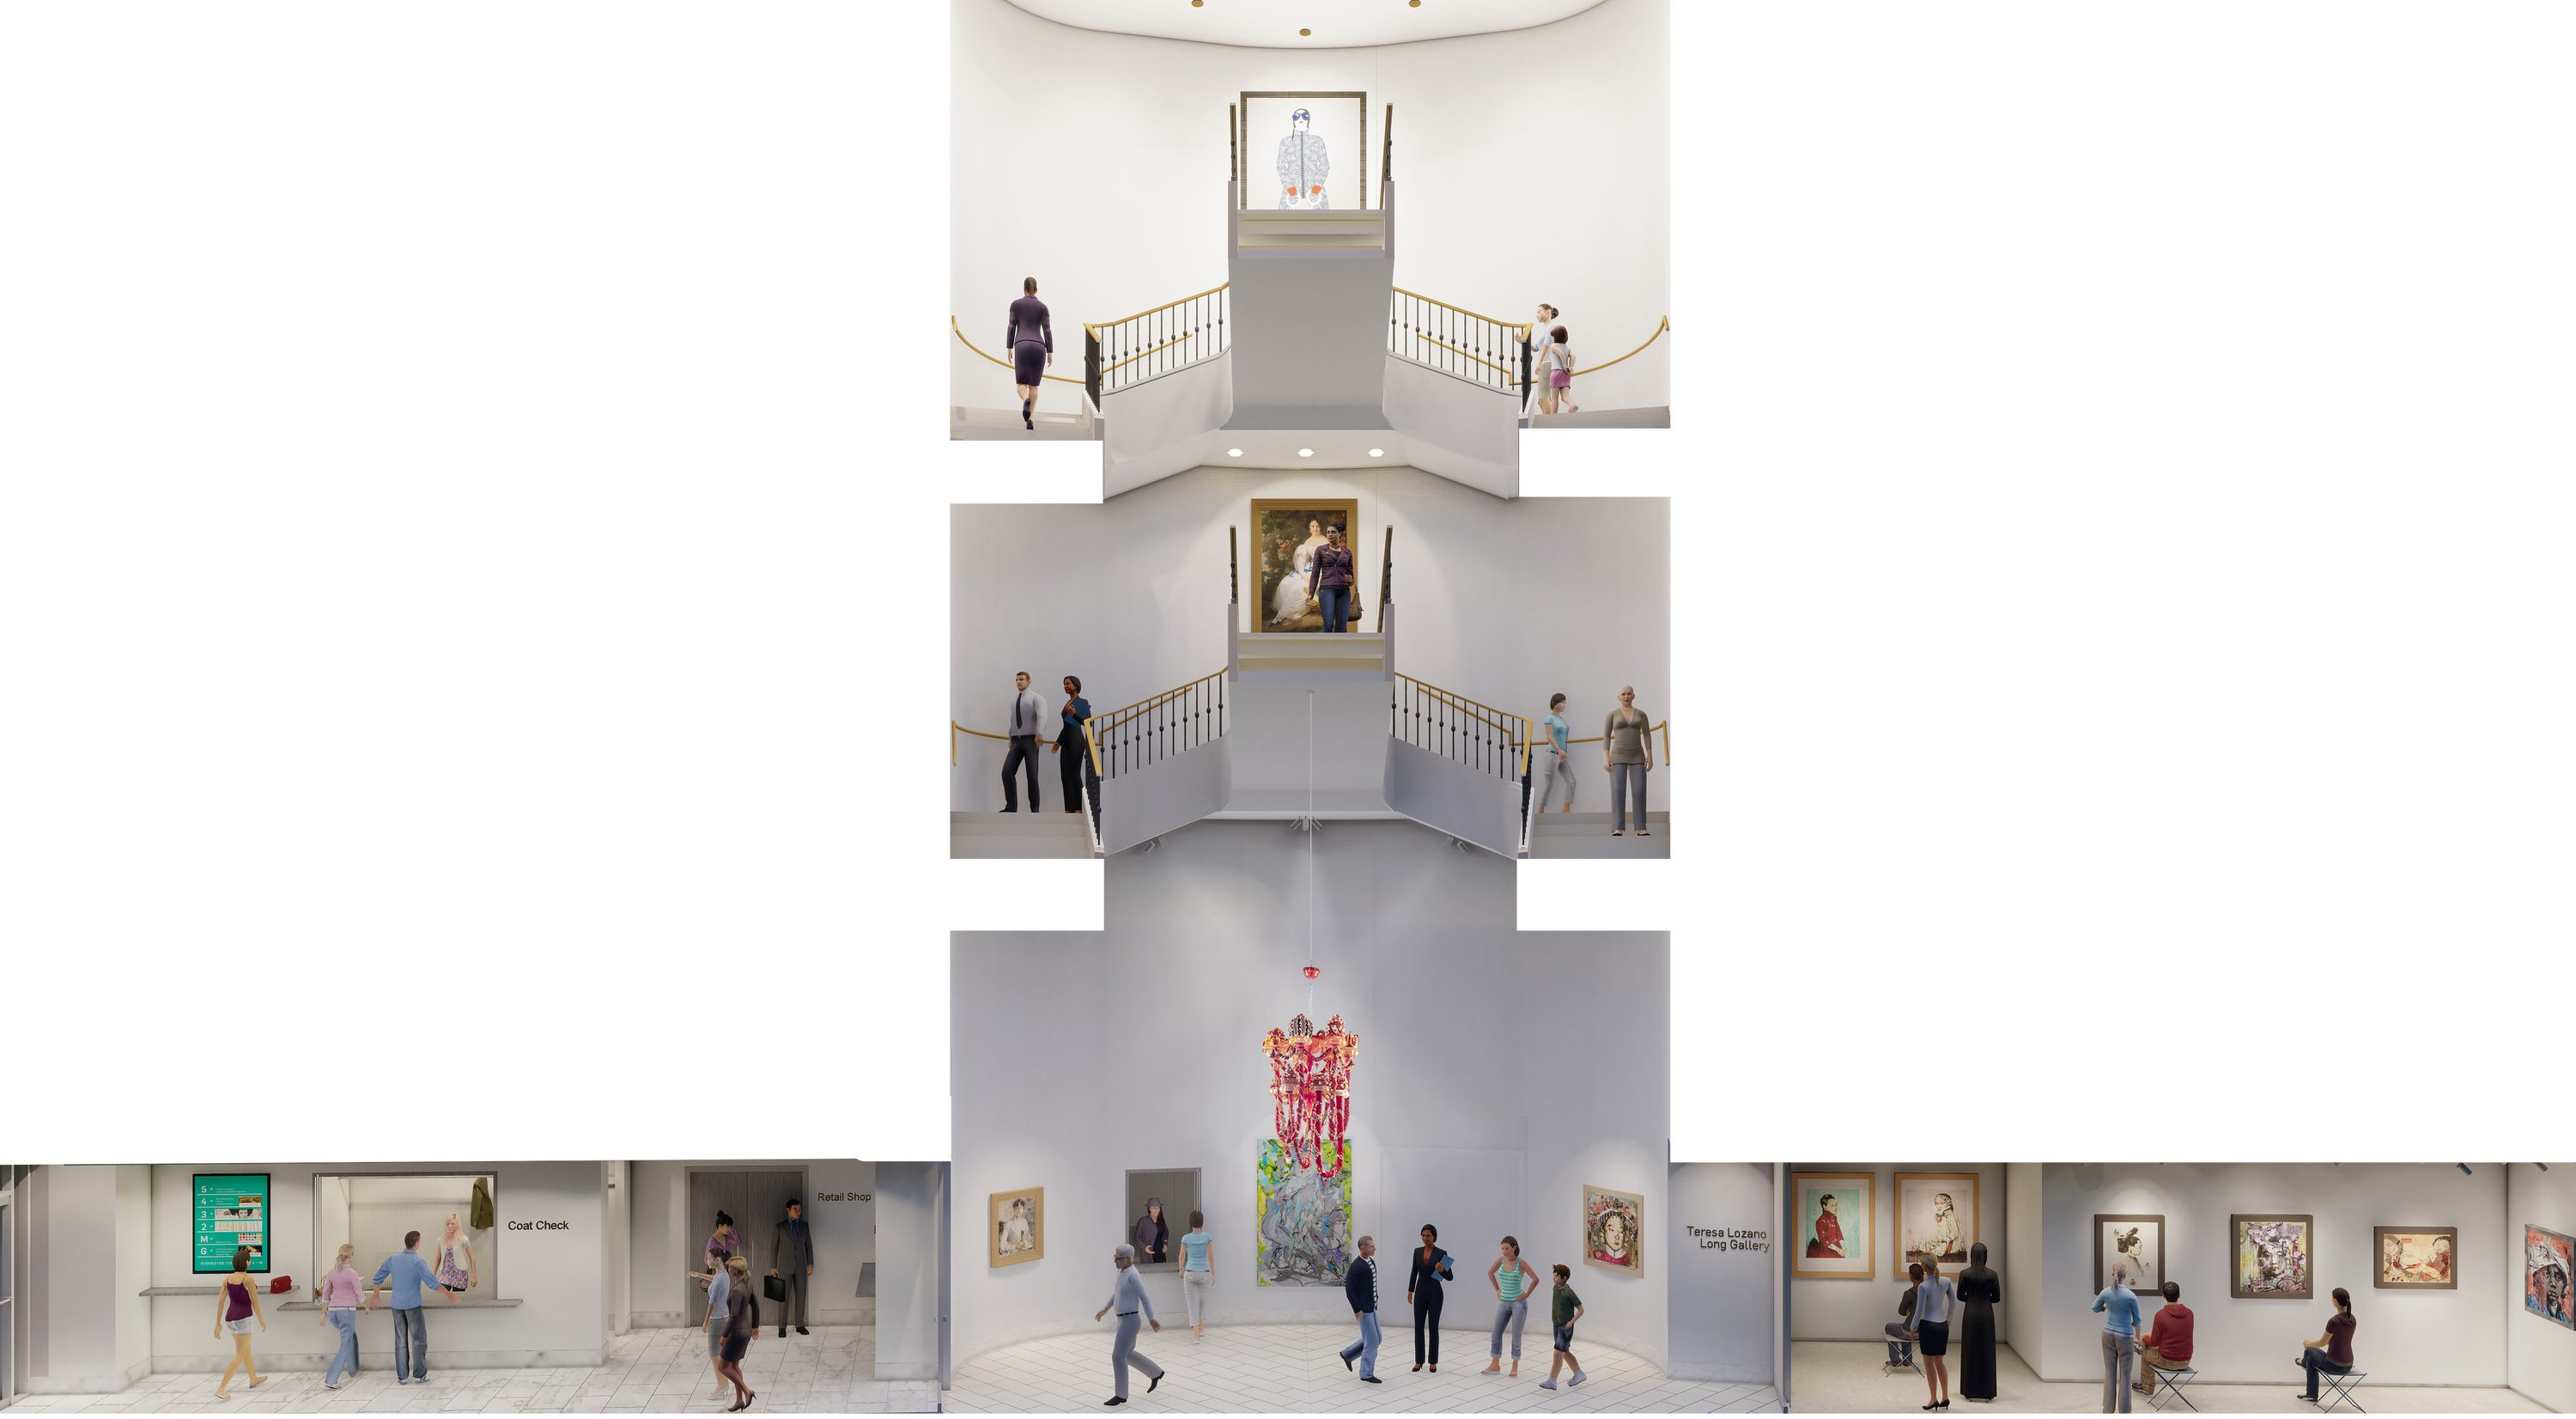 Rendering shaped like an upside-down letter T shows the museum great hall and stairwell.